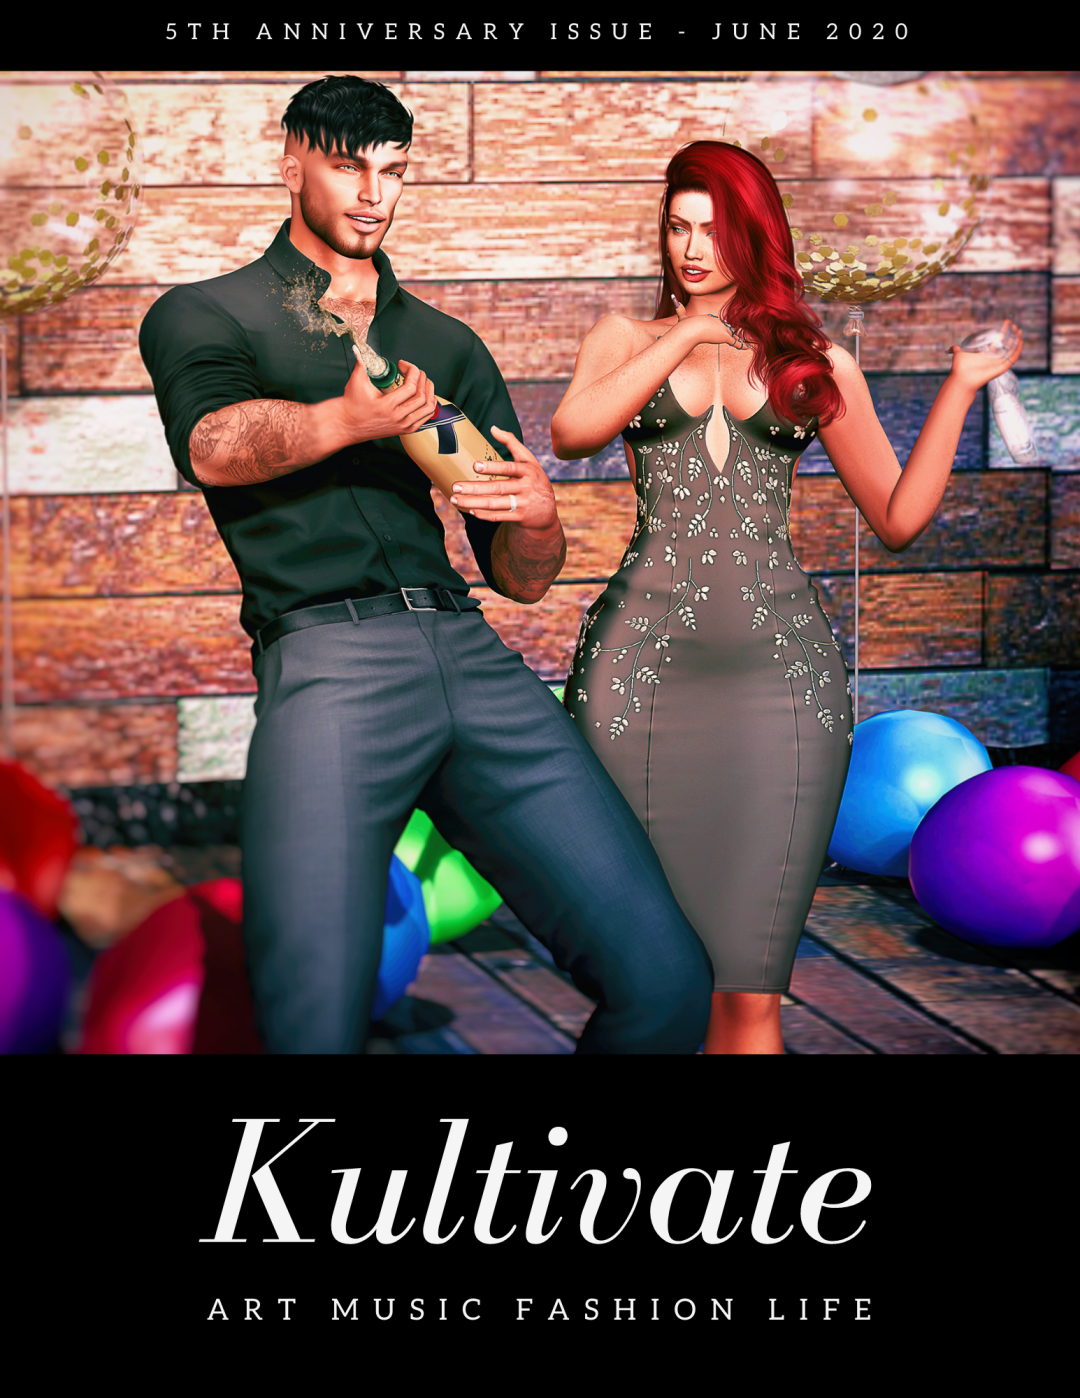 KULTIVATE-JUNE2020 ISSUE